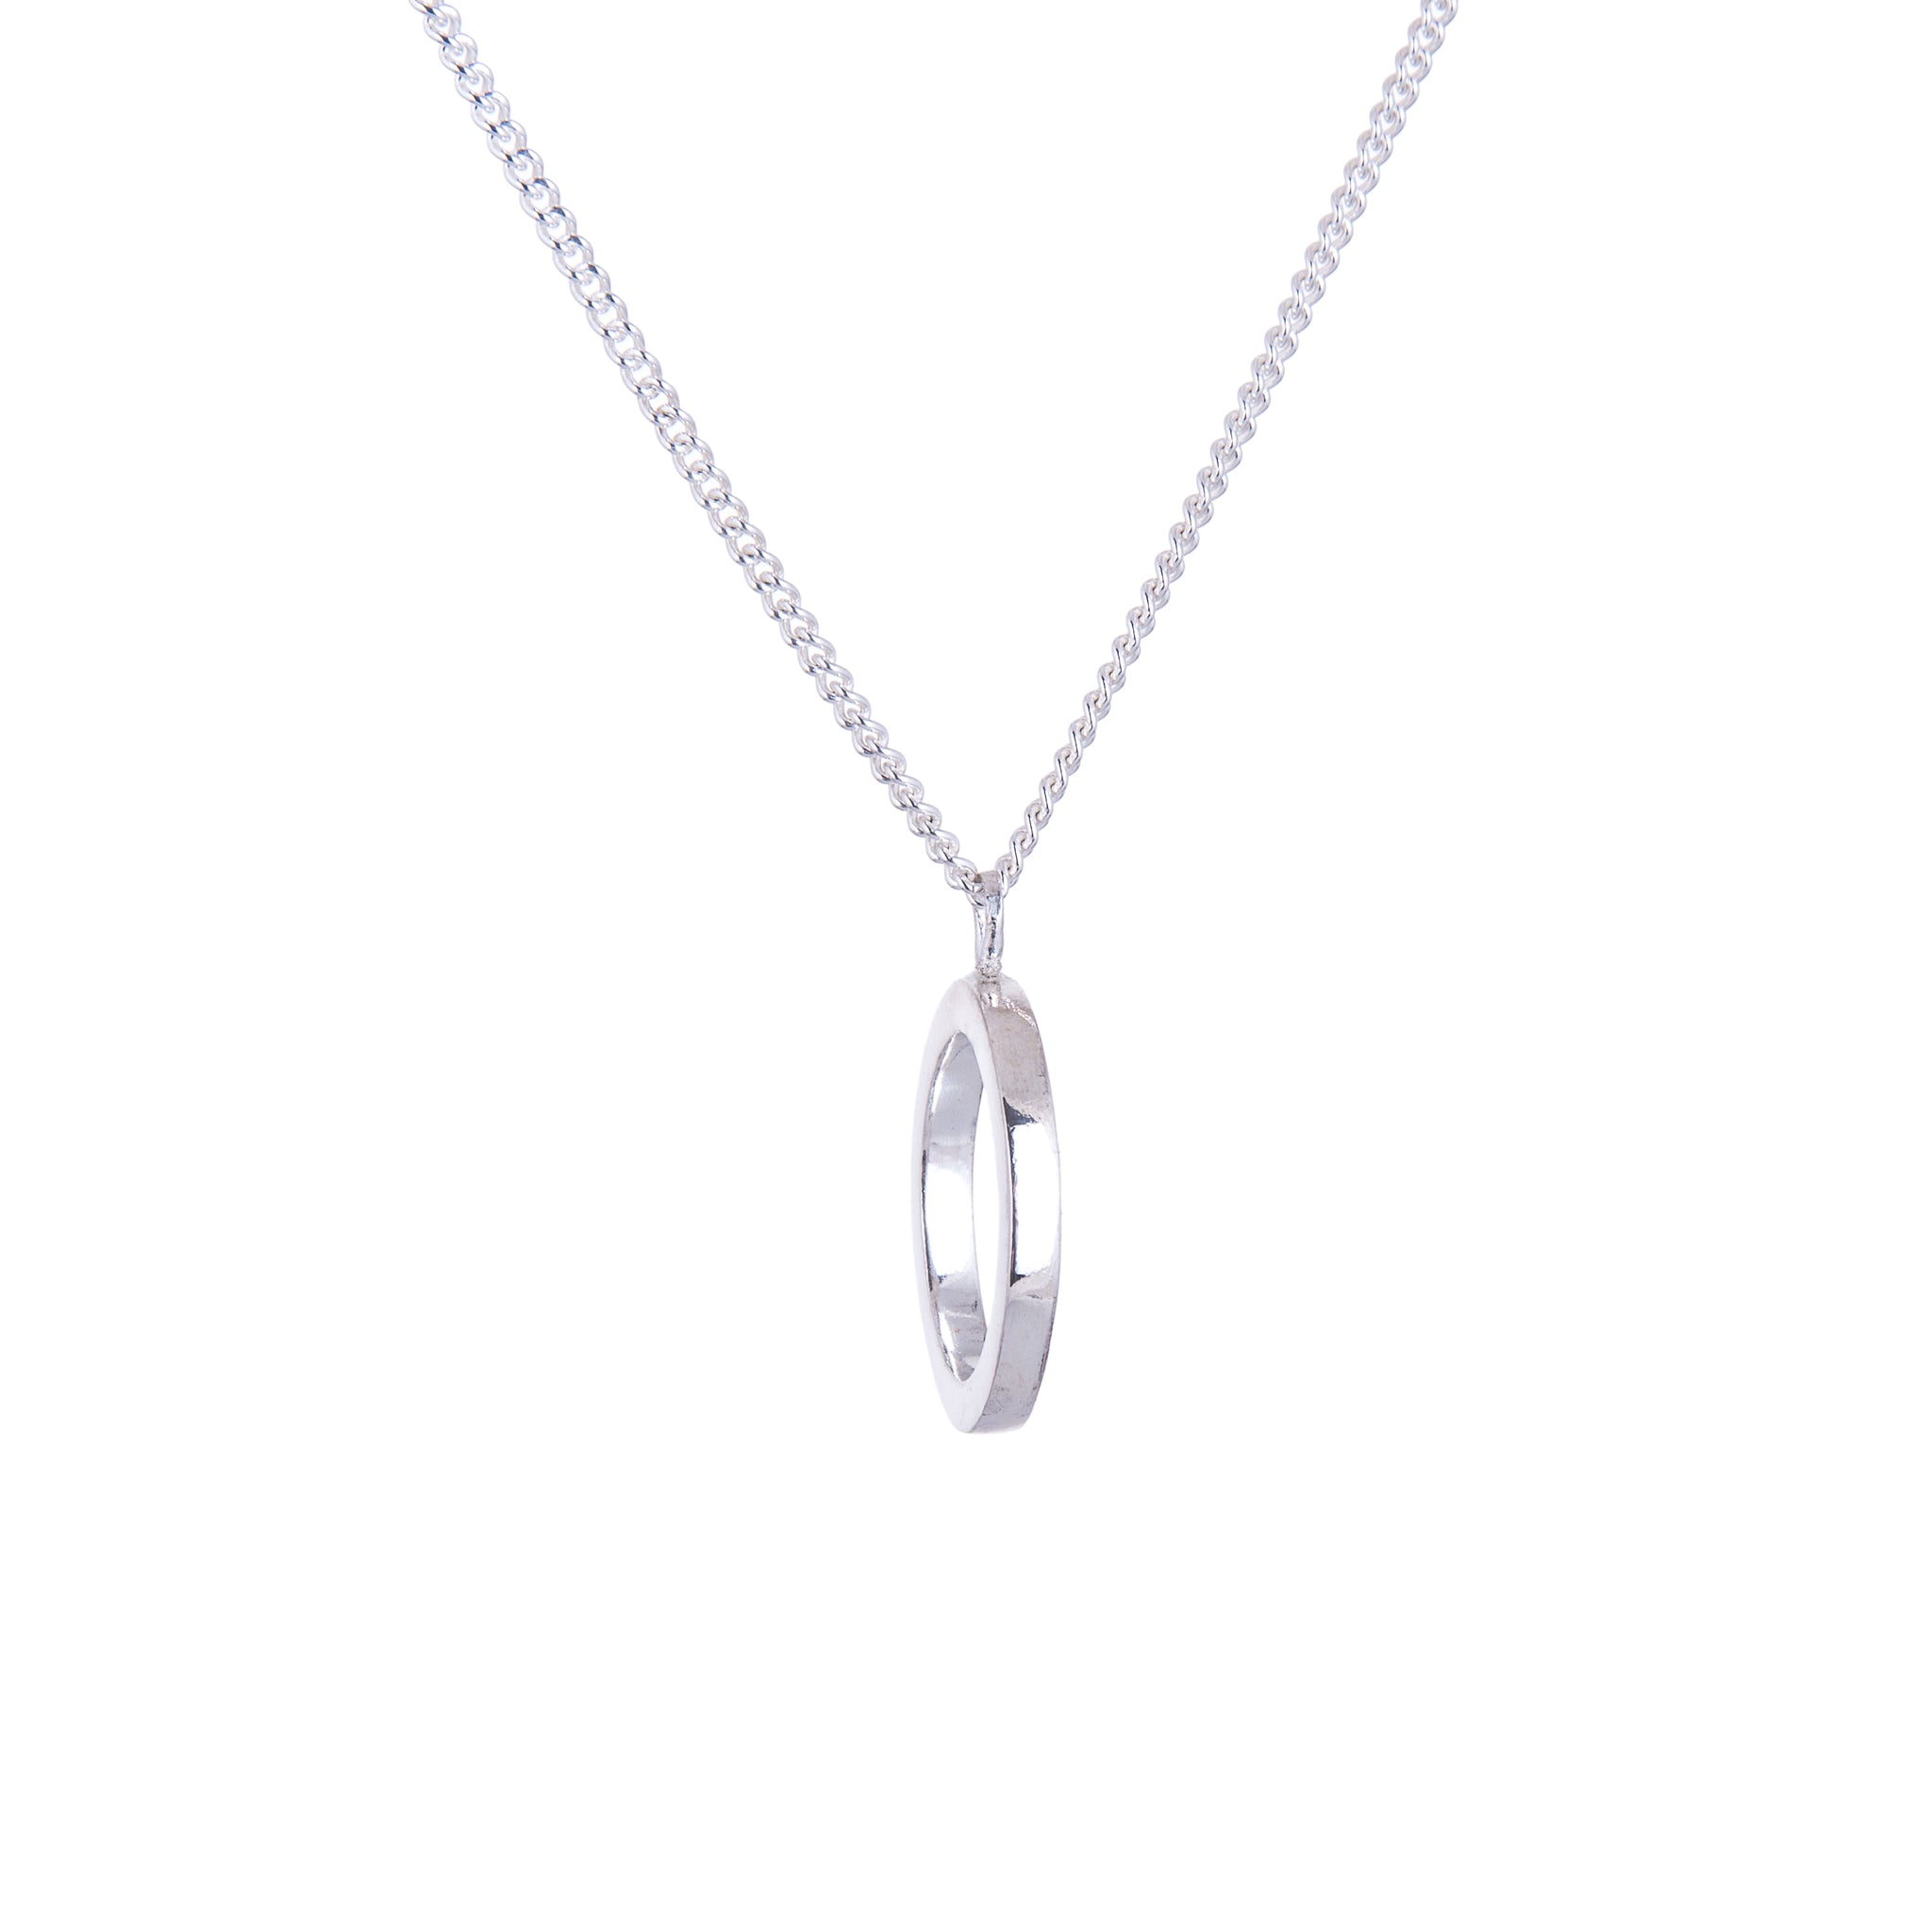 AMATI NEGATIVE DISC NECKLACE